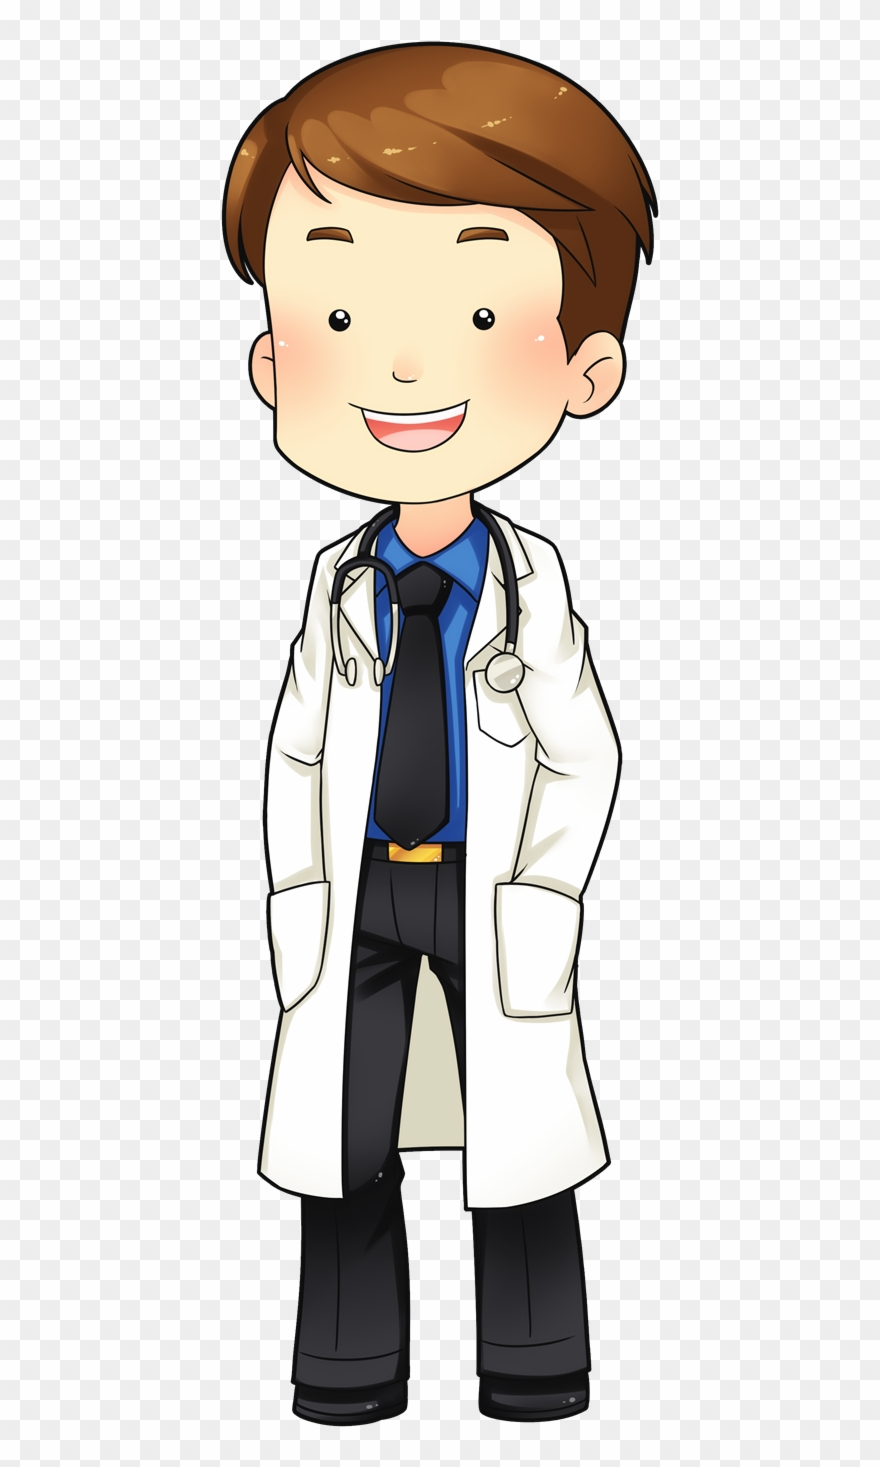 Cute - Cute Doctor Clipart - Png Download (#28415) - PinClipart png transparent